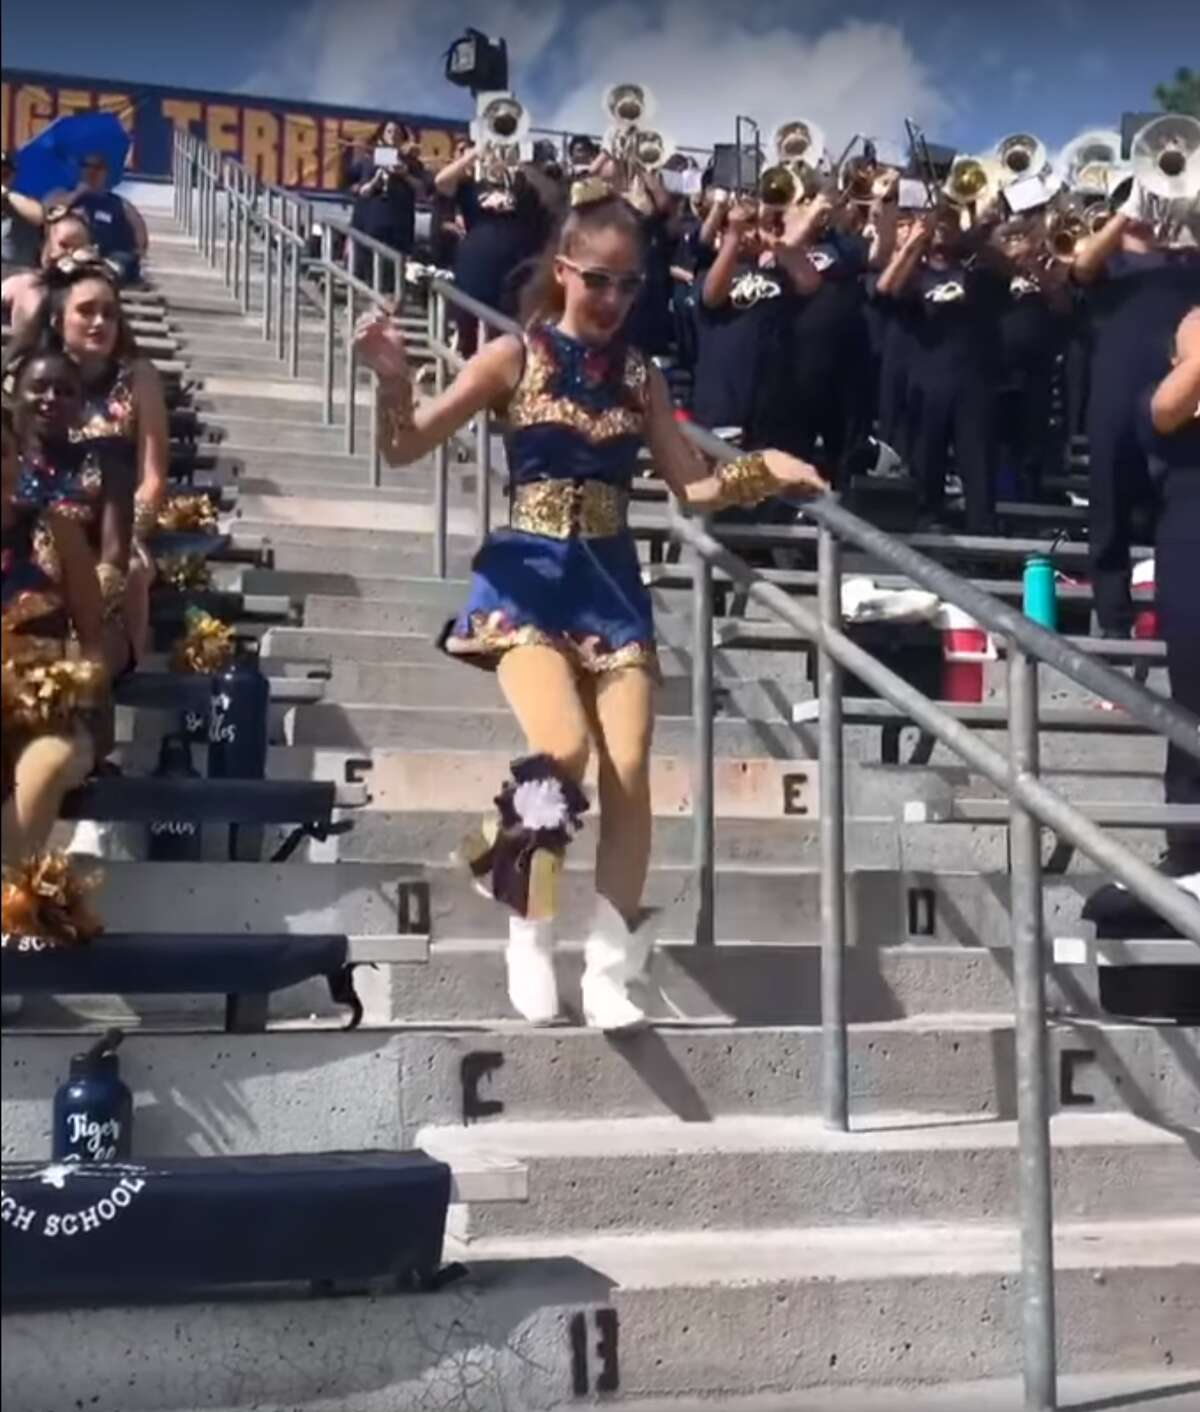 Jillian Herman gleefully ran down the bleacher stairs as soon as she saw her brother to give him a powerful, welcoming embrace.